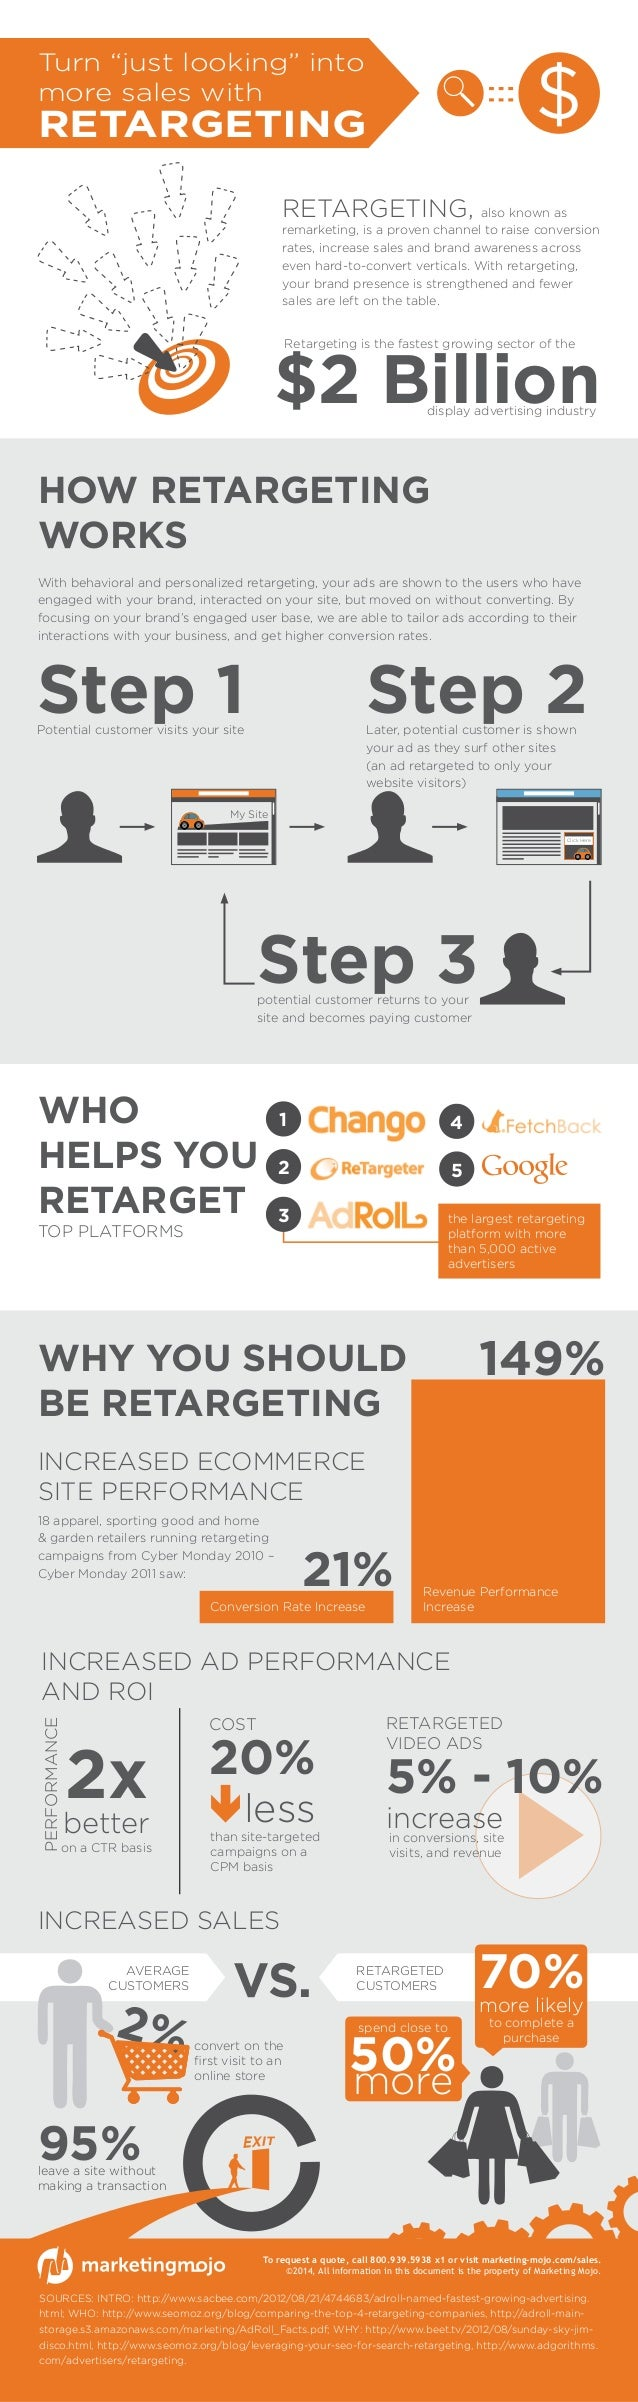 in conversions, site visits, and revenue RETARGETED VIDEO ADS 5% - 10% increase RETARGETING, also known as remarketing, is...